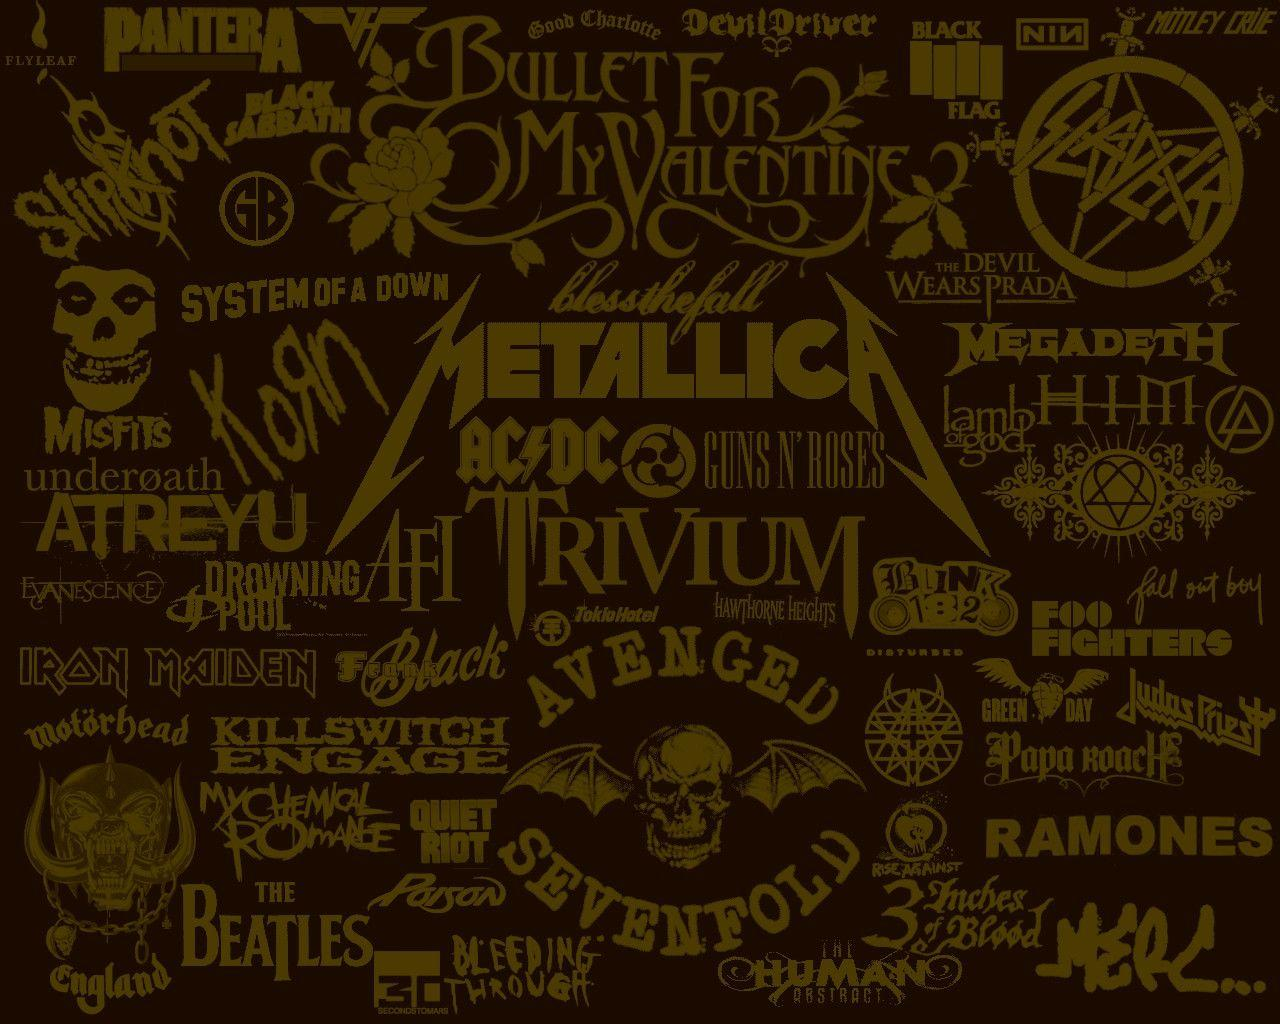 rock wallpaper3 - photo #1